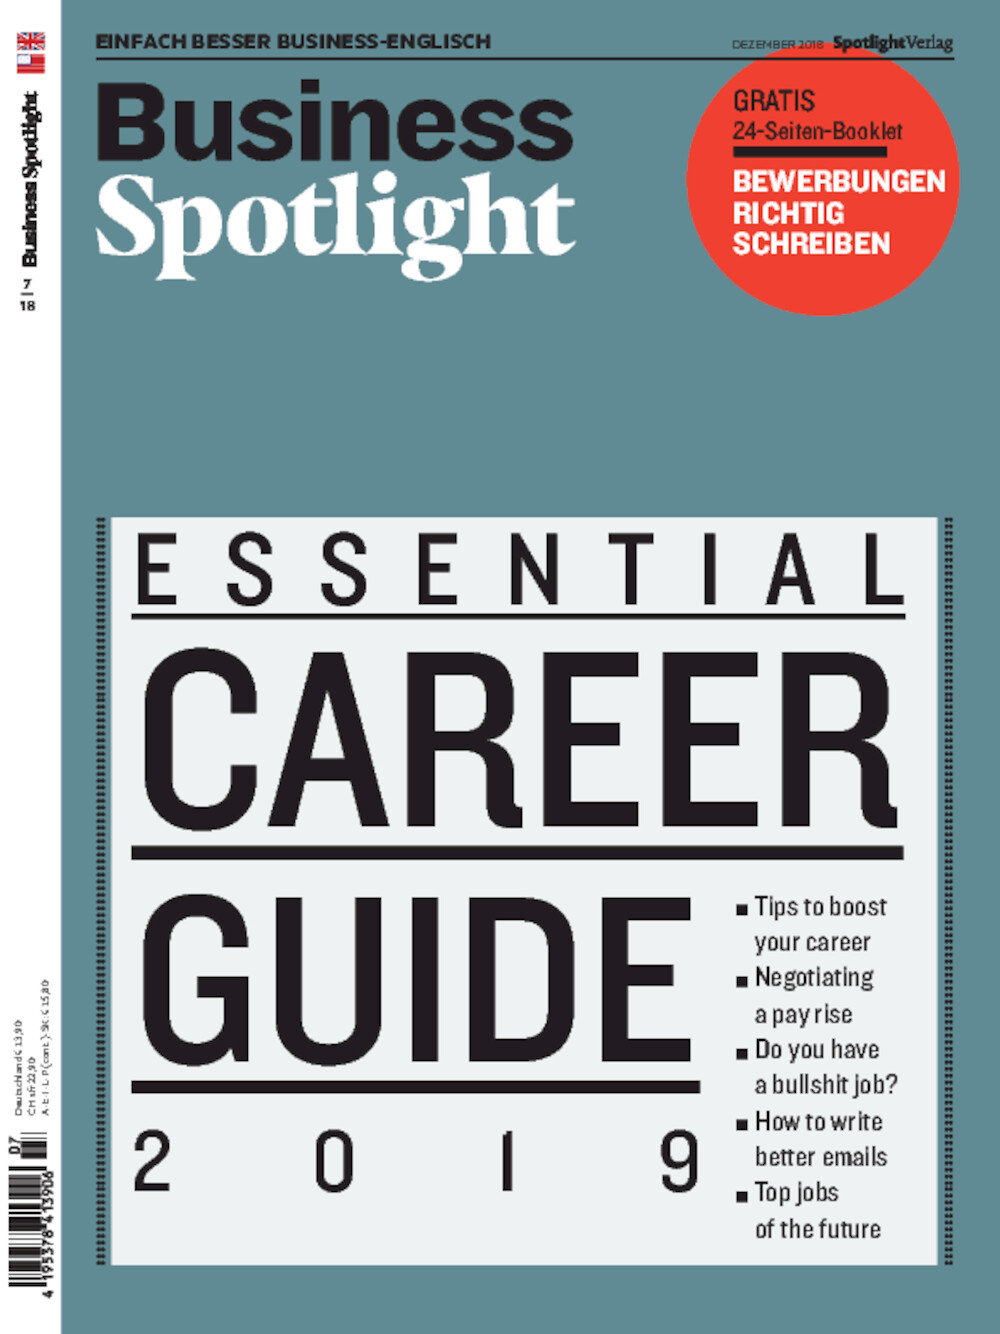 Business Spotlight ePaper 07/2018